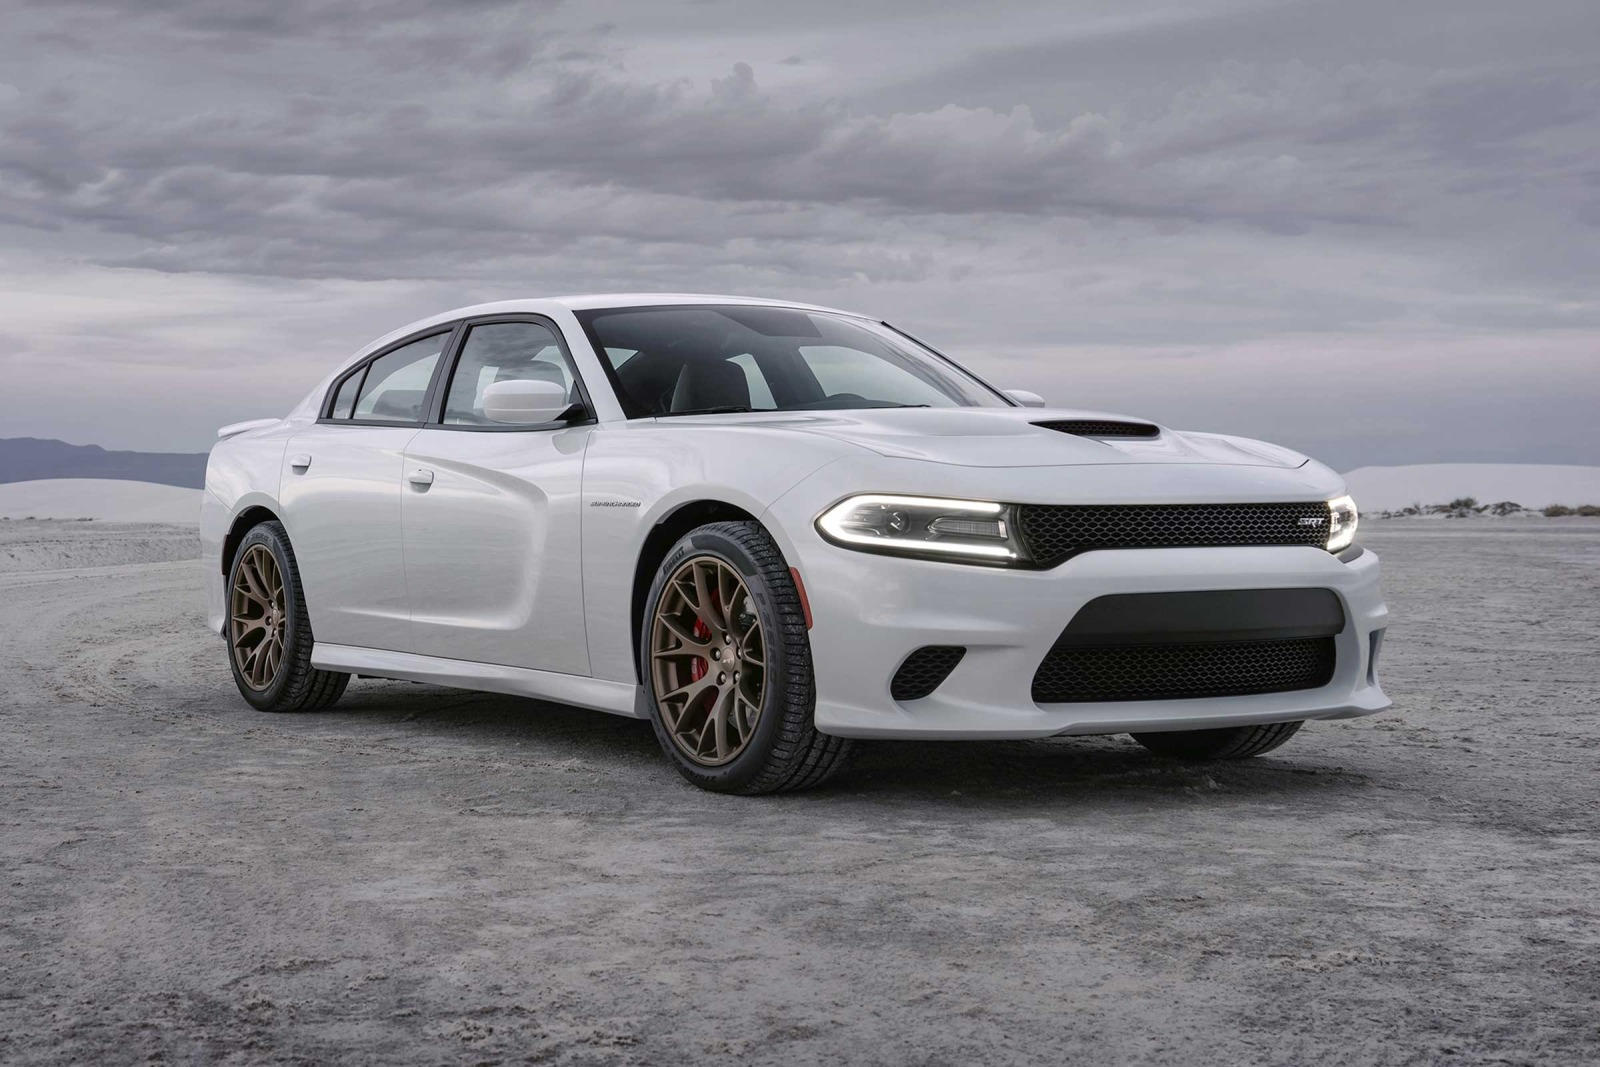 Dodge Charger Srt Hellcat >> 2018 Dodge Charger Srt Hellcat Review Trims Specs And Price Carbuzz